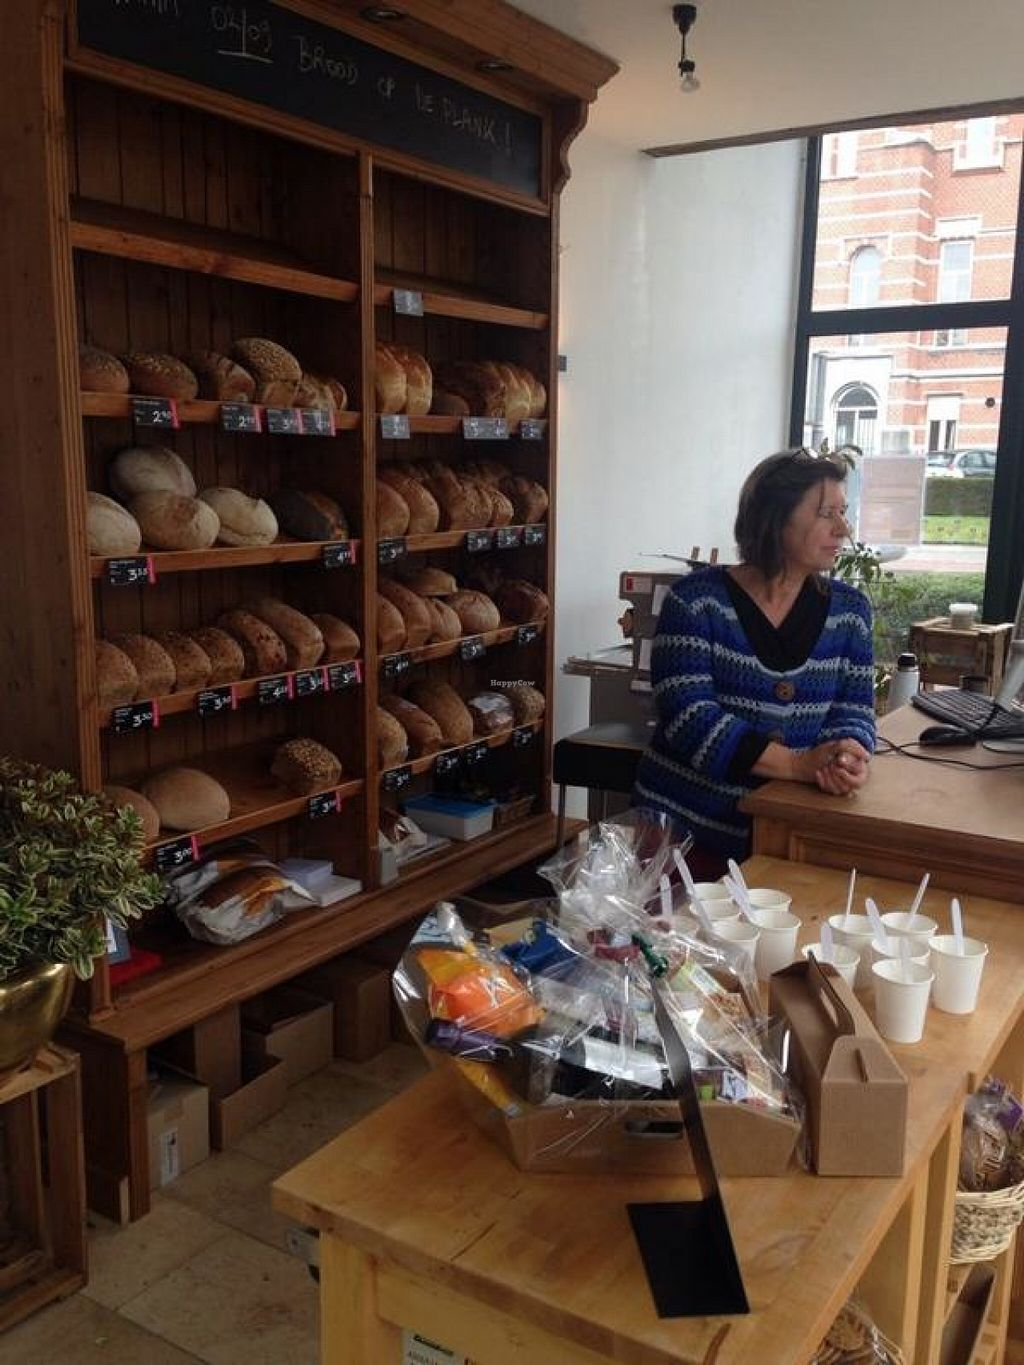 """Photo of CLOSED: Happy Food Store  by <a href=""""/members/profile/KrisRussel"""">KrisRussel</a> <br/>bread section and register <br/> June 12, 2016  - <a href='/contact/abuse/image/74830/153616'>Report</a>"""